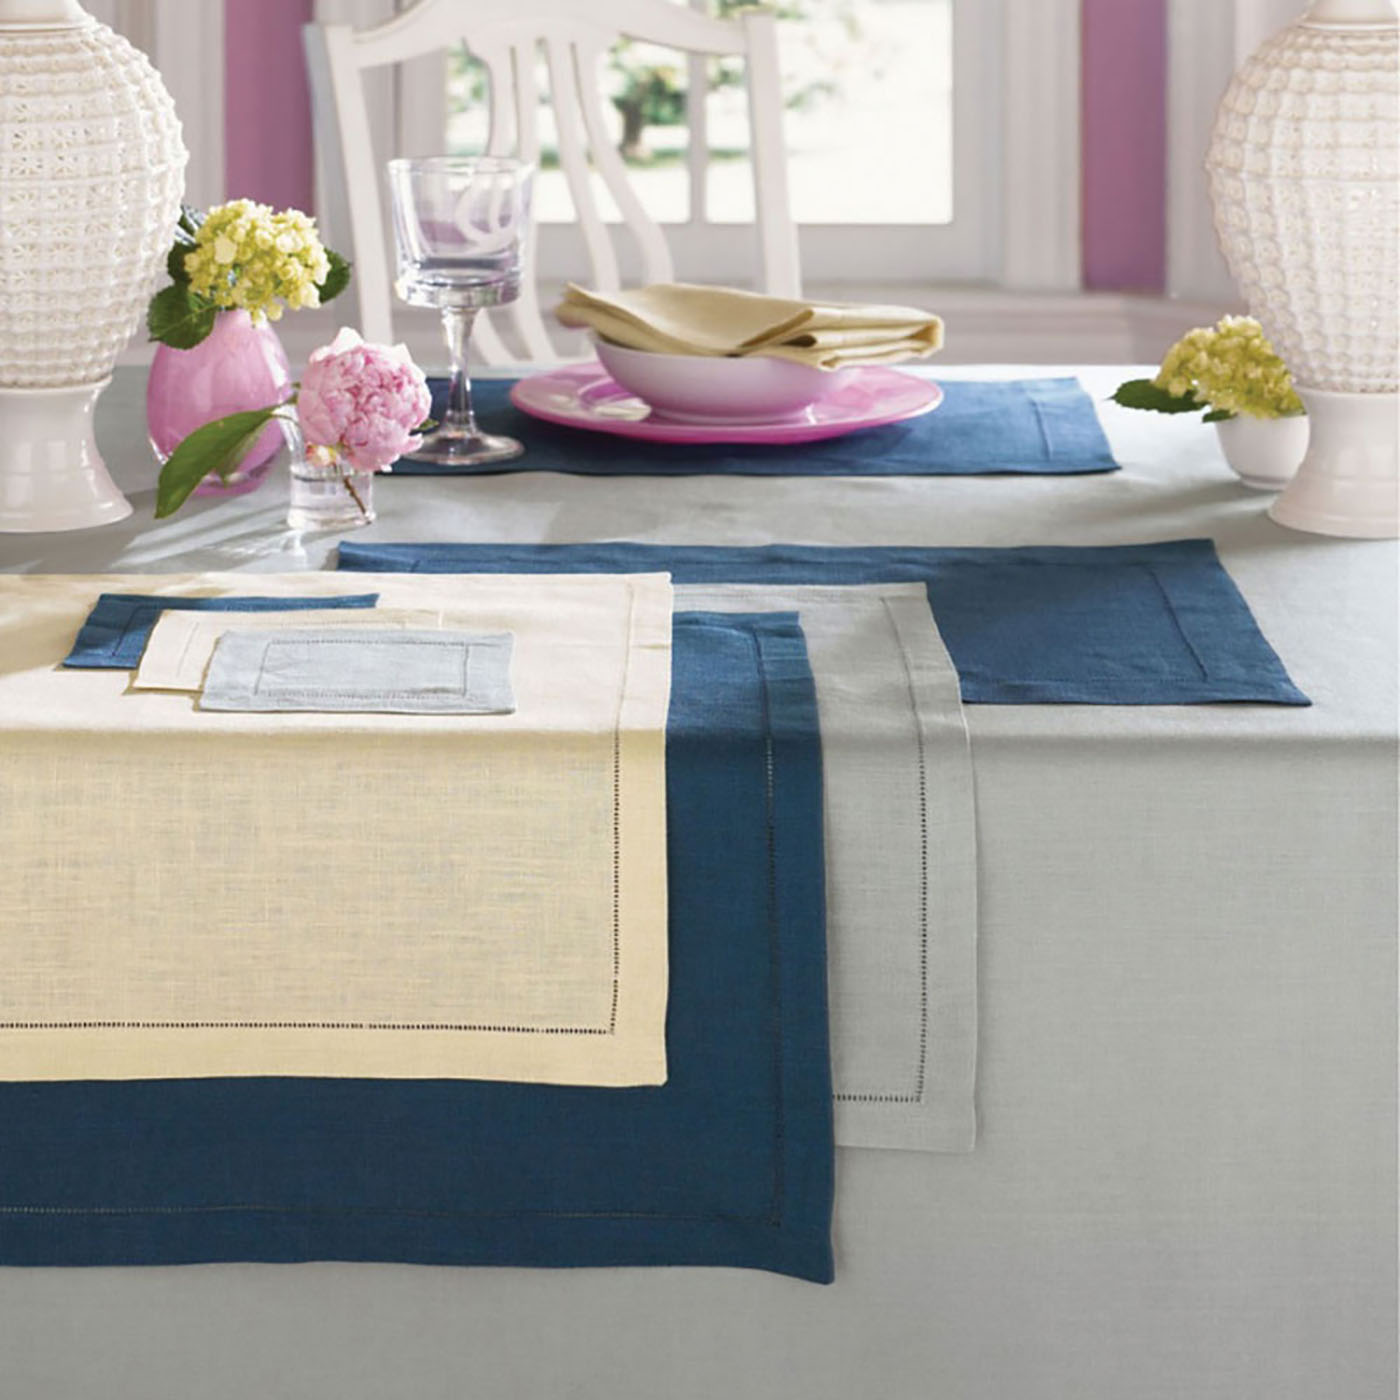 Festival by Sferra - Square Tablecloth 54x54 (Oyster)